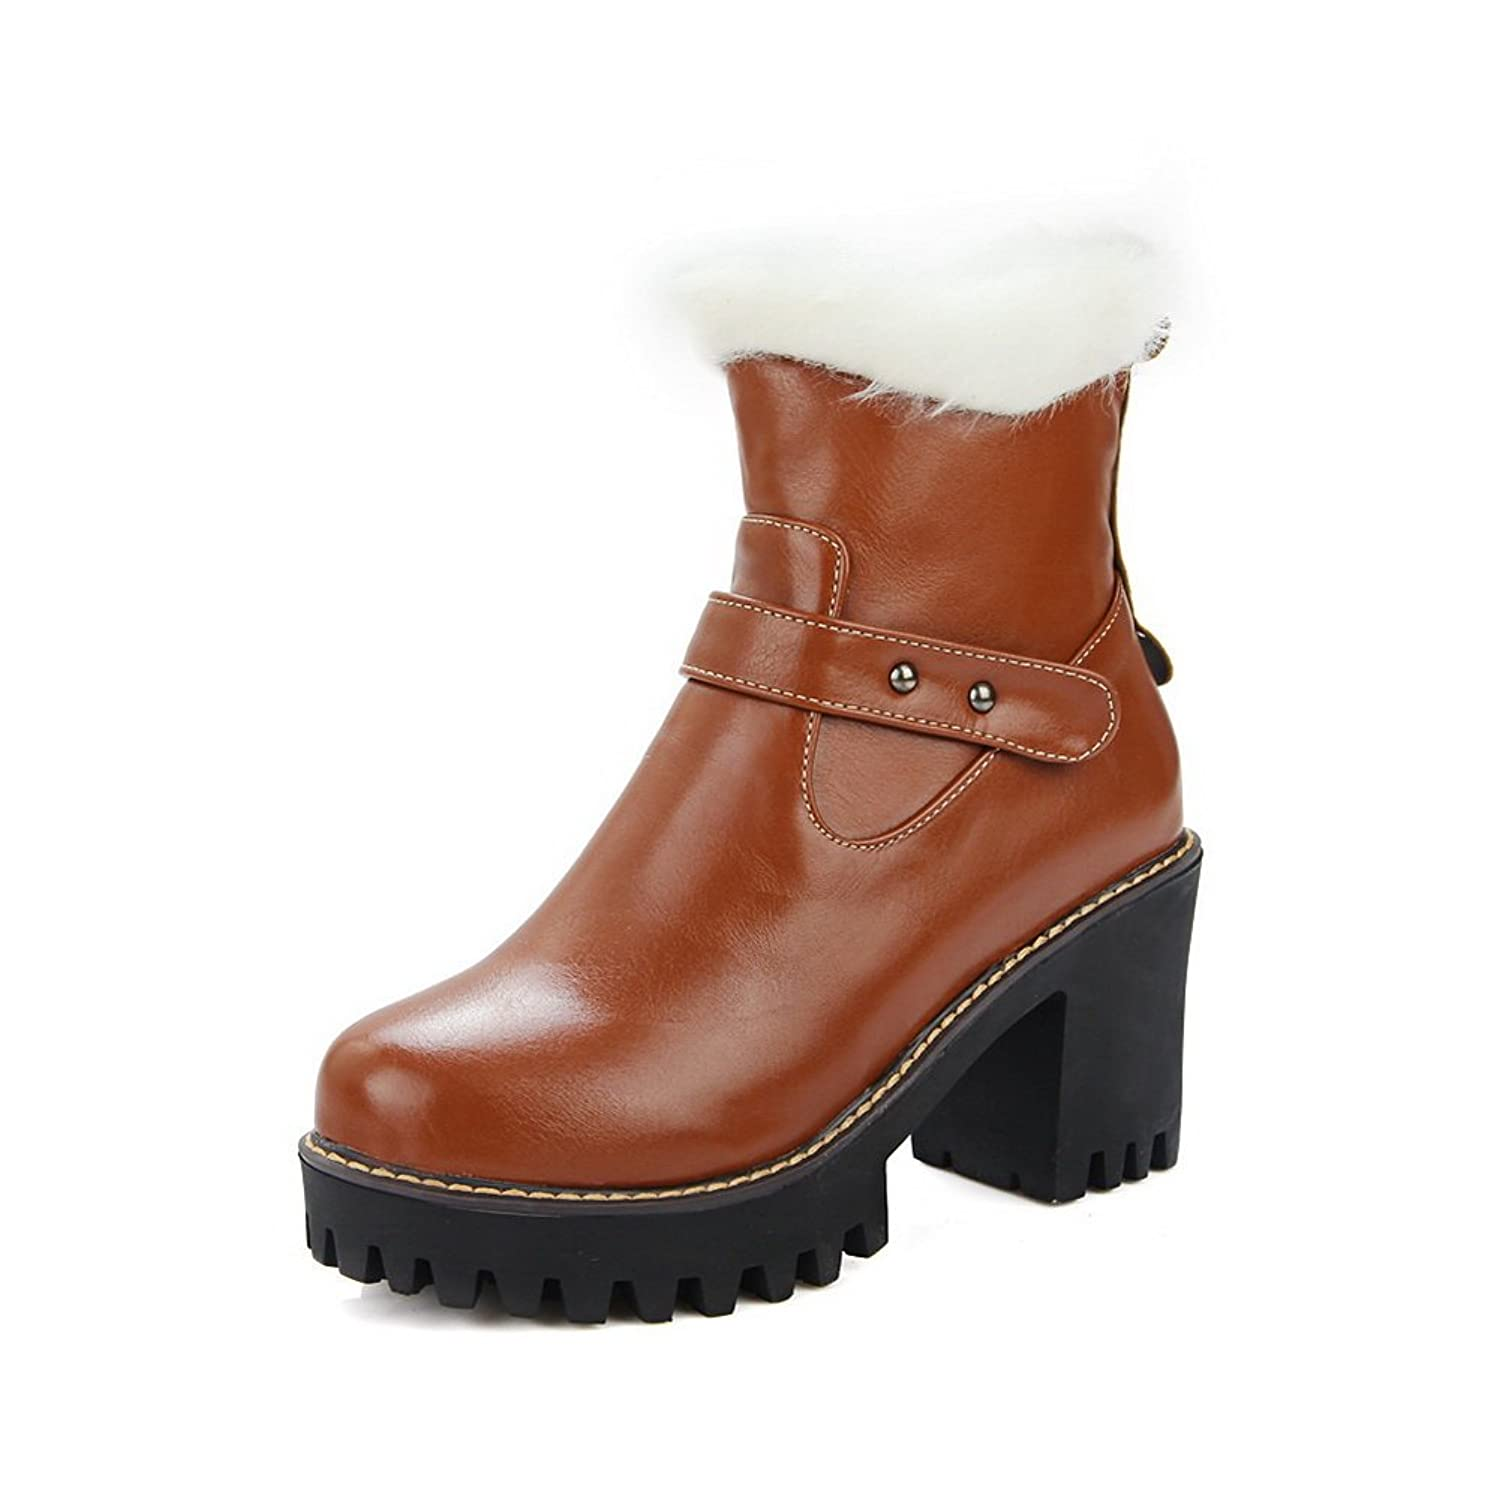 1TO9 Girls Wheeled Heel Shoes Zipper Platform Imitated Leather Boots